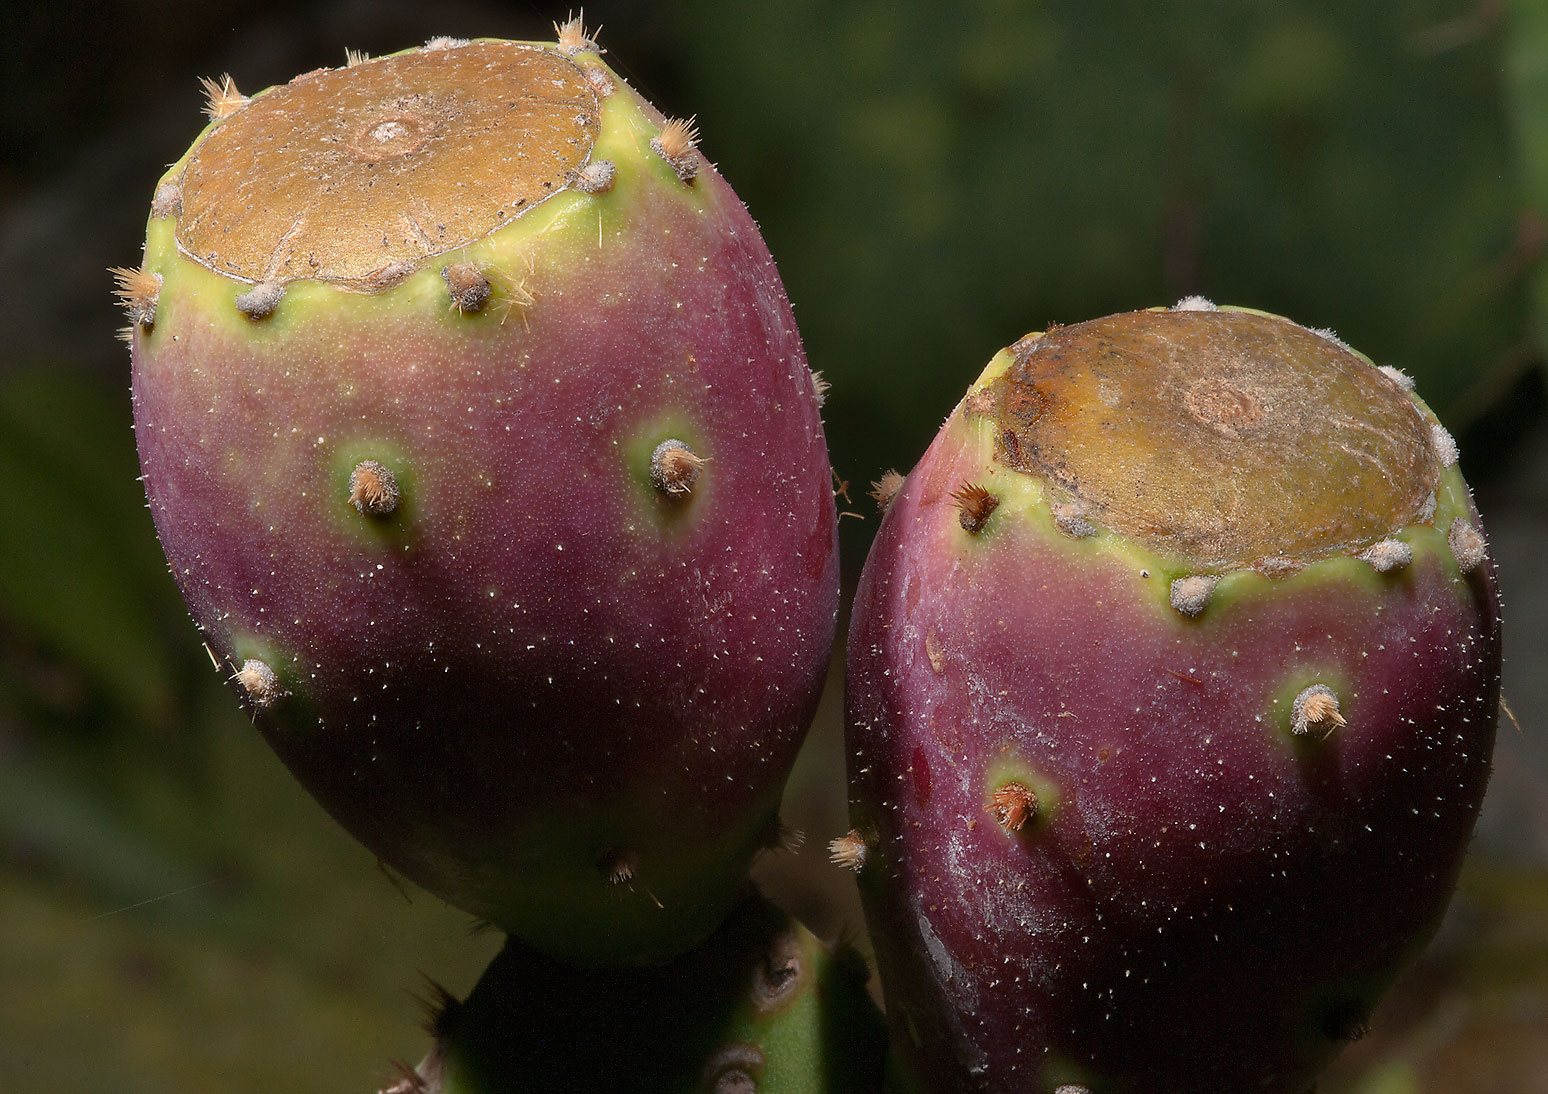 Fruits of prickly pears (Opuntia) in TAMU...M University. College Station, Texas